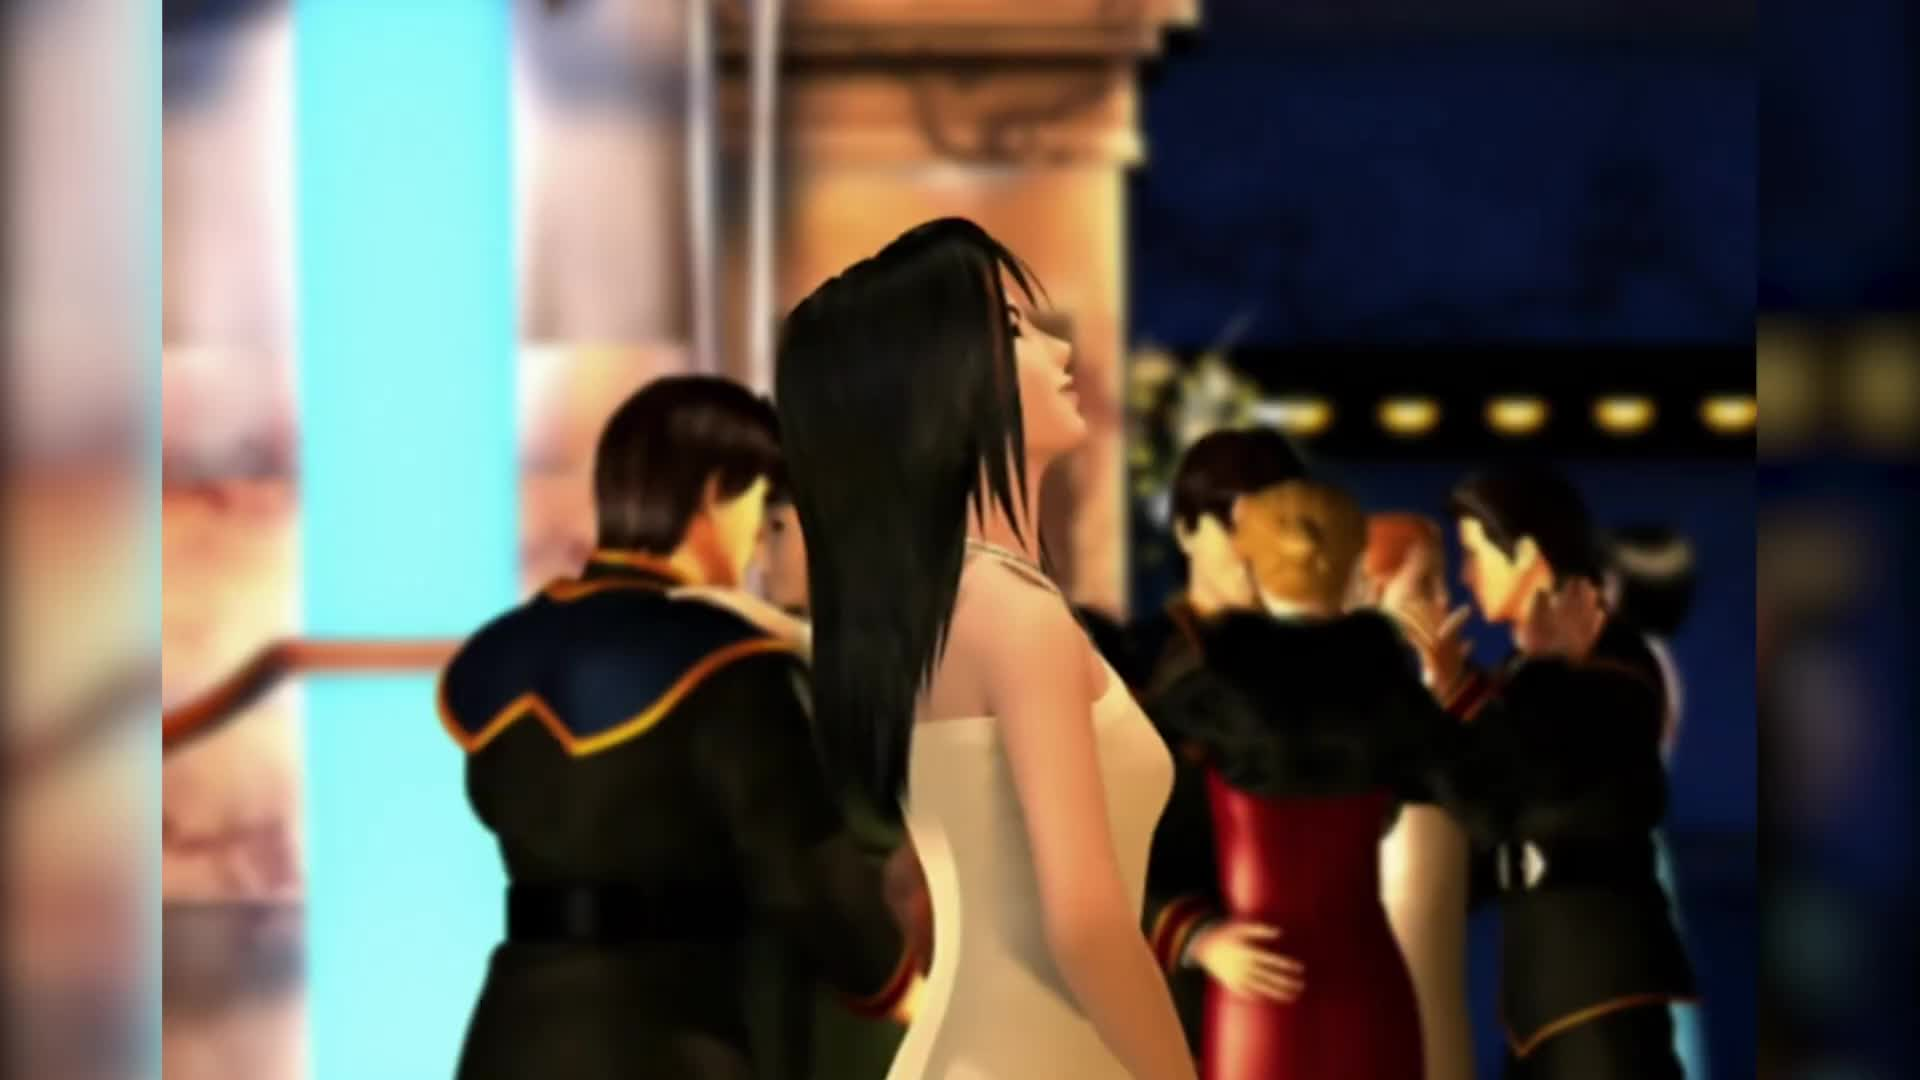 Final Fantasy VIII Remastered - Official Release Date Reveal Trailer [HD] screen capture